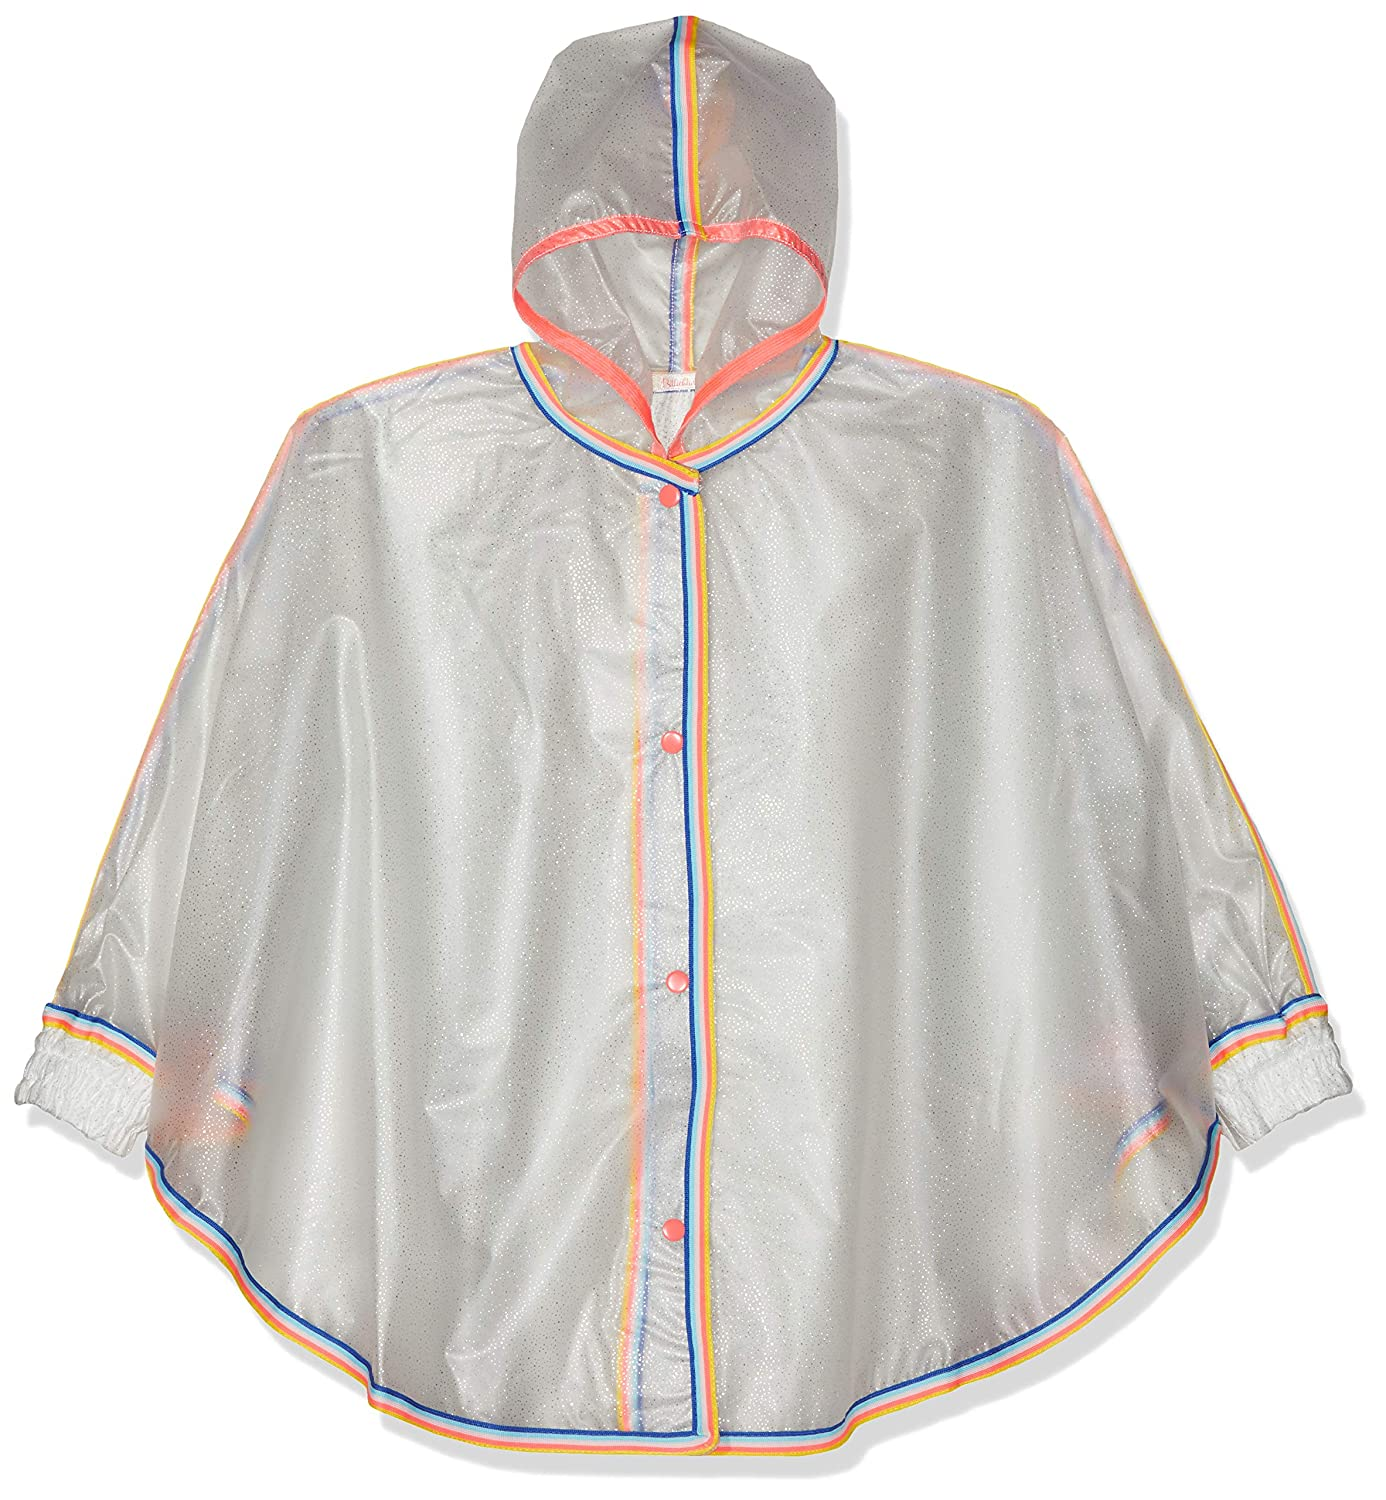 Transparent (Unique Z40) 8 ans  Billiebleush Cape, Manteau Fille